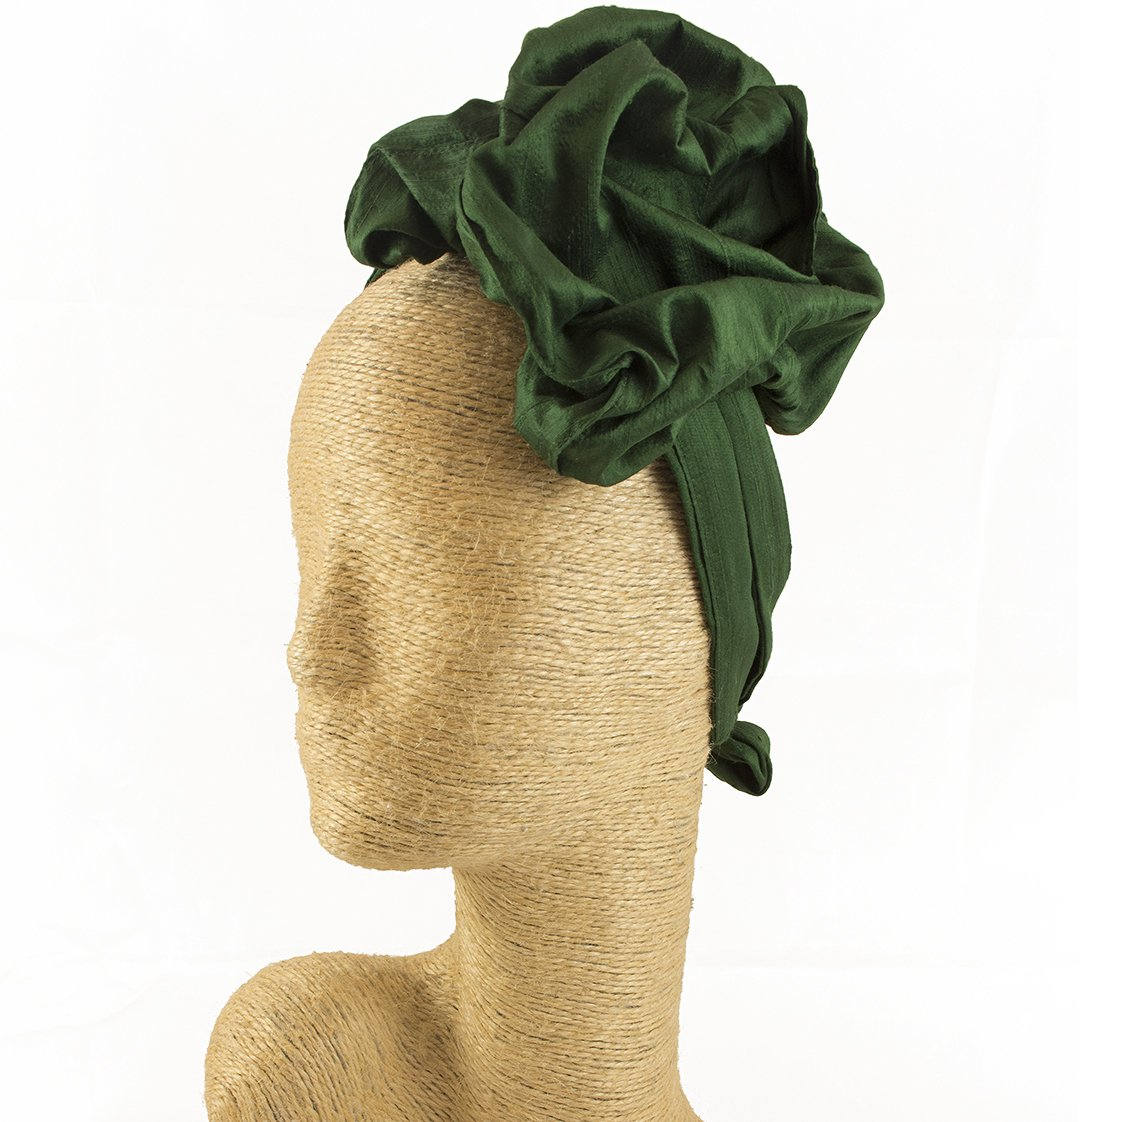 Fascinator, Silk Headbands, Millinery, Worldwide Free Shipment, Delivery in 2 Days, Customized Tailoring, Designer Fashion, Head wrap, Bohemian Accessories, Green, Boho Chic, Gift Box